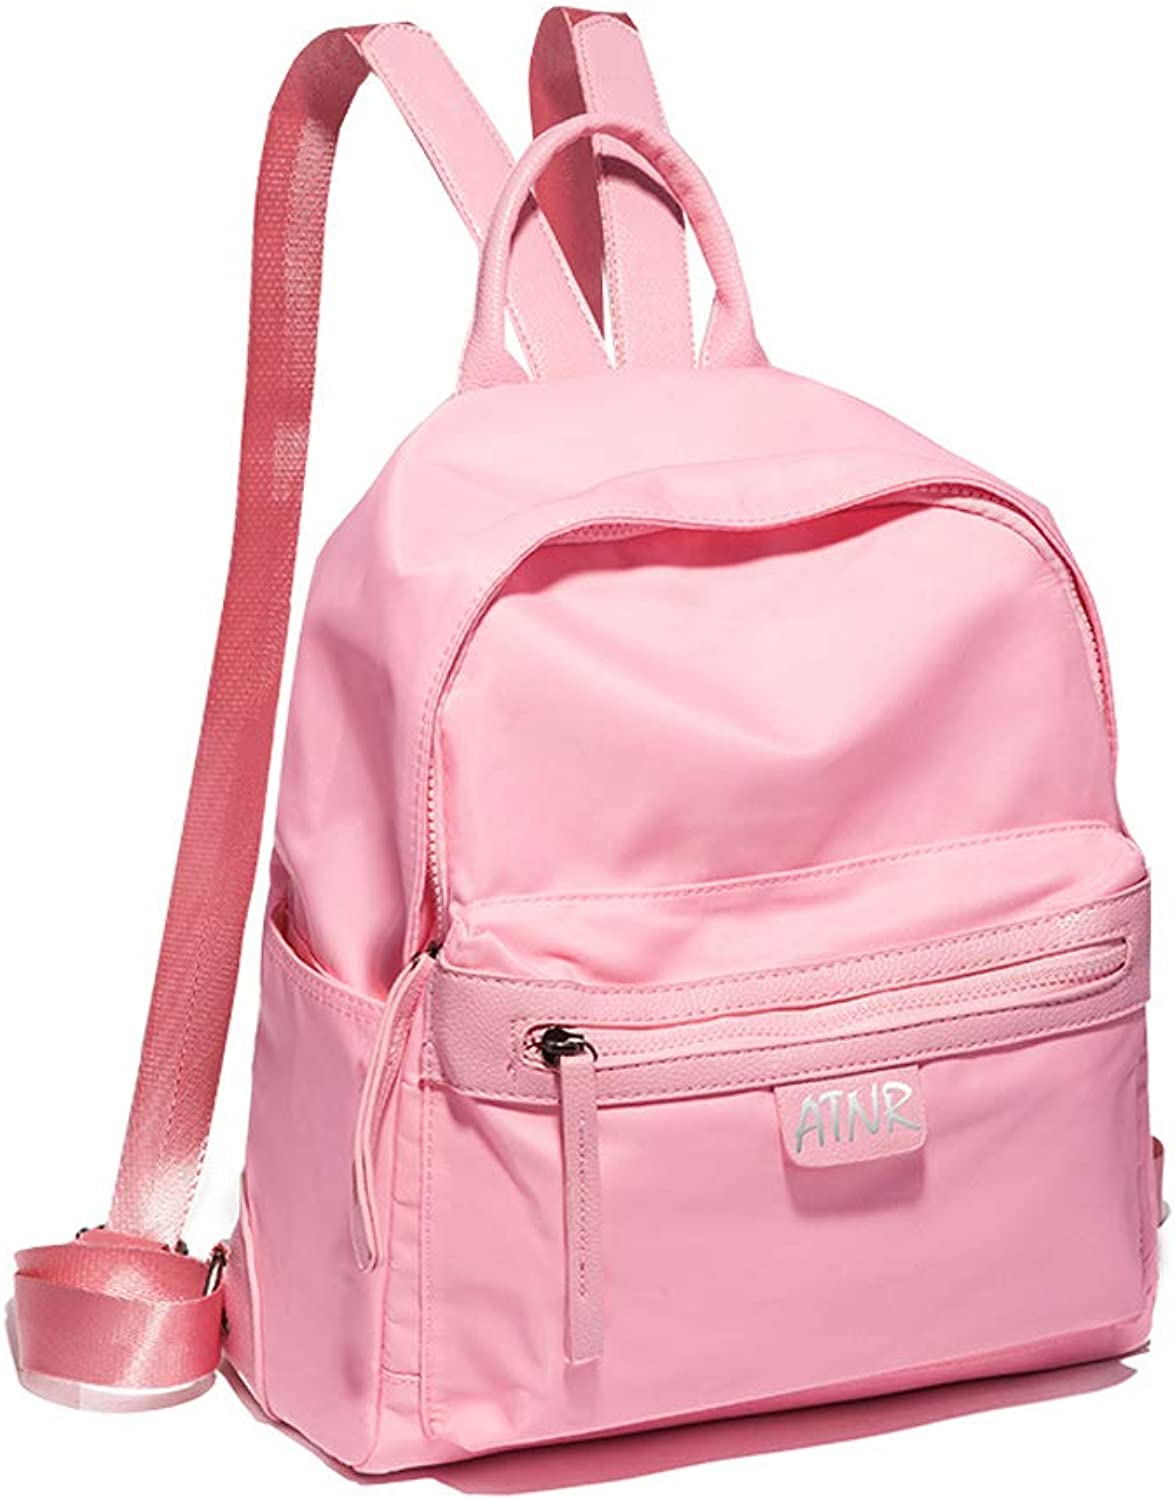 HLJ Simple Fashion Bag Personalized Leisure Travel Backpack Large Capacity Backpack (color   Pink, Size   23  13  28cm)